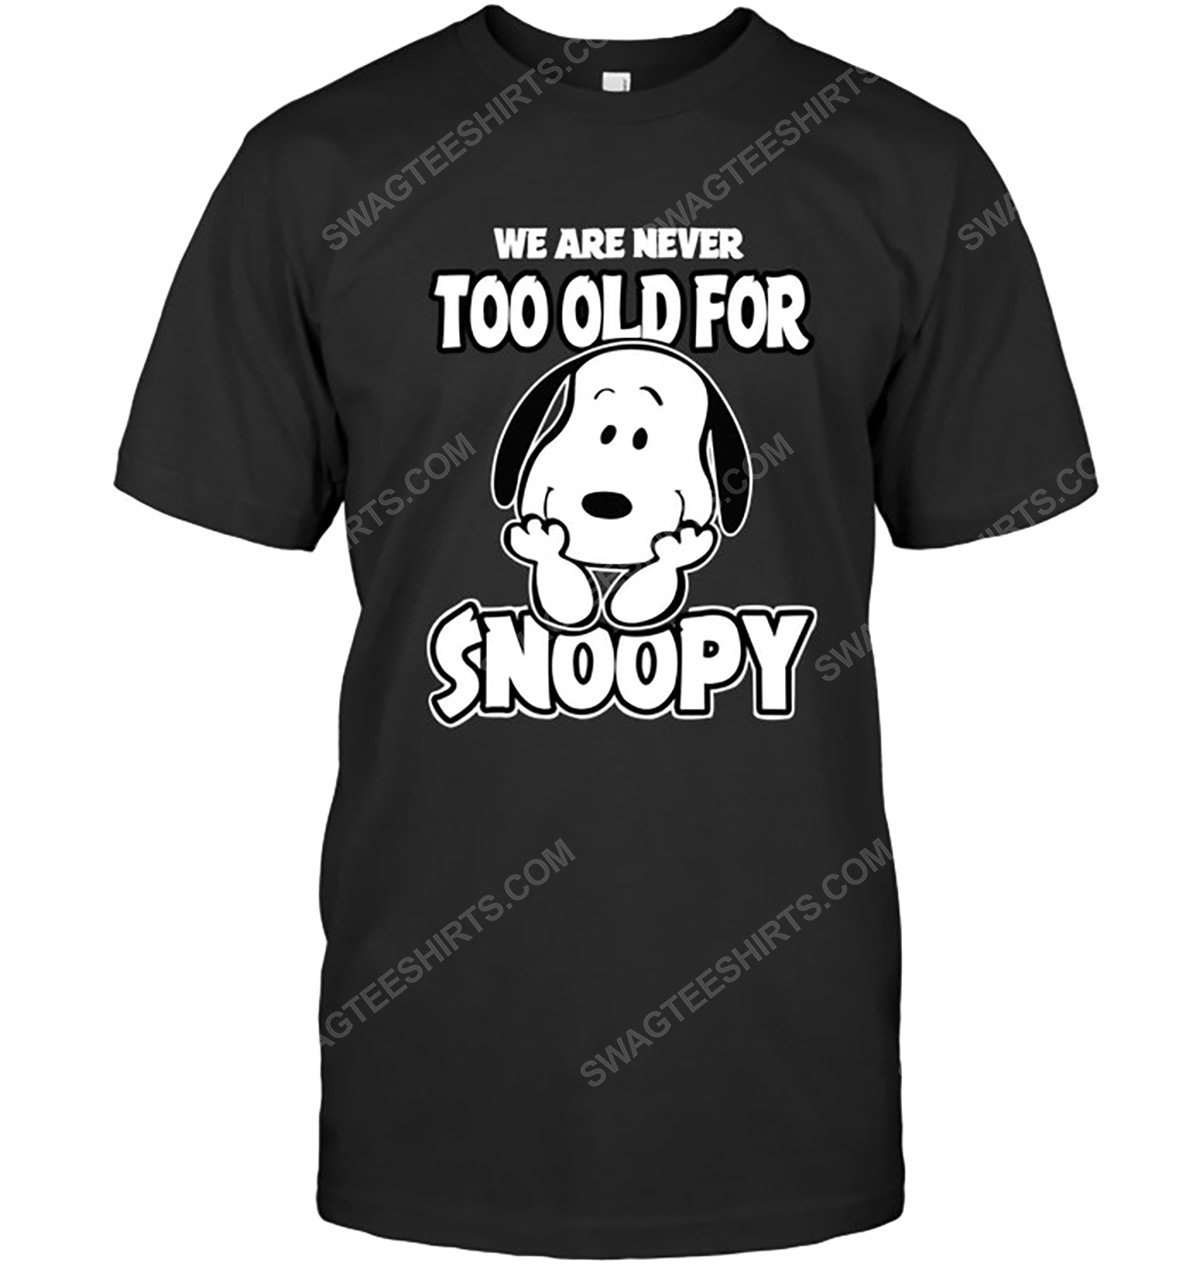 We are never too old for snoopy charlie brown tshirt 1